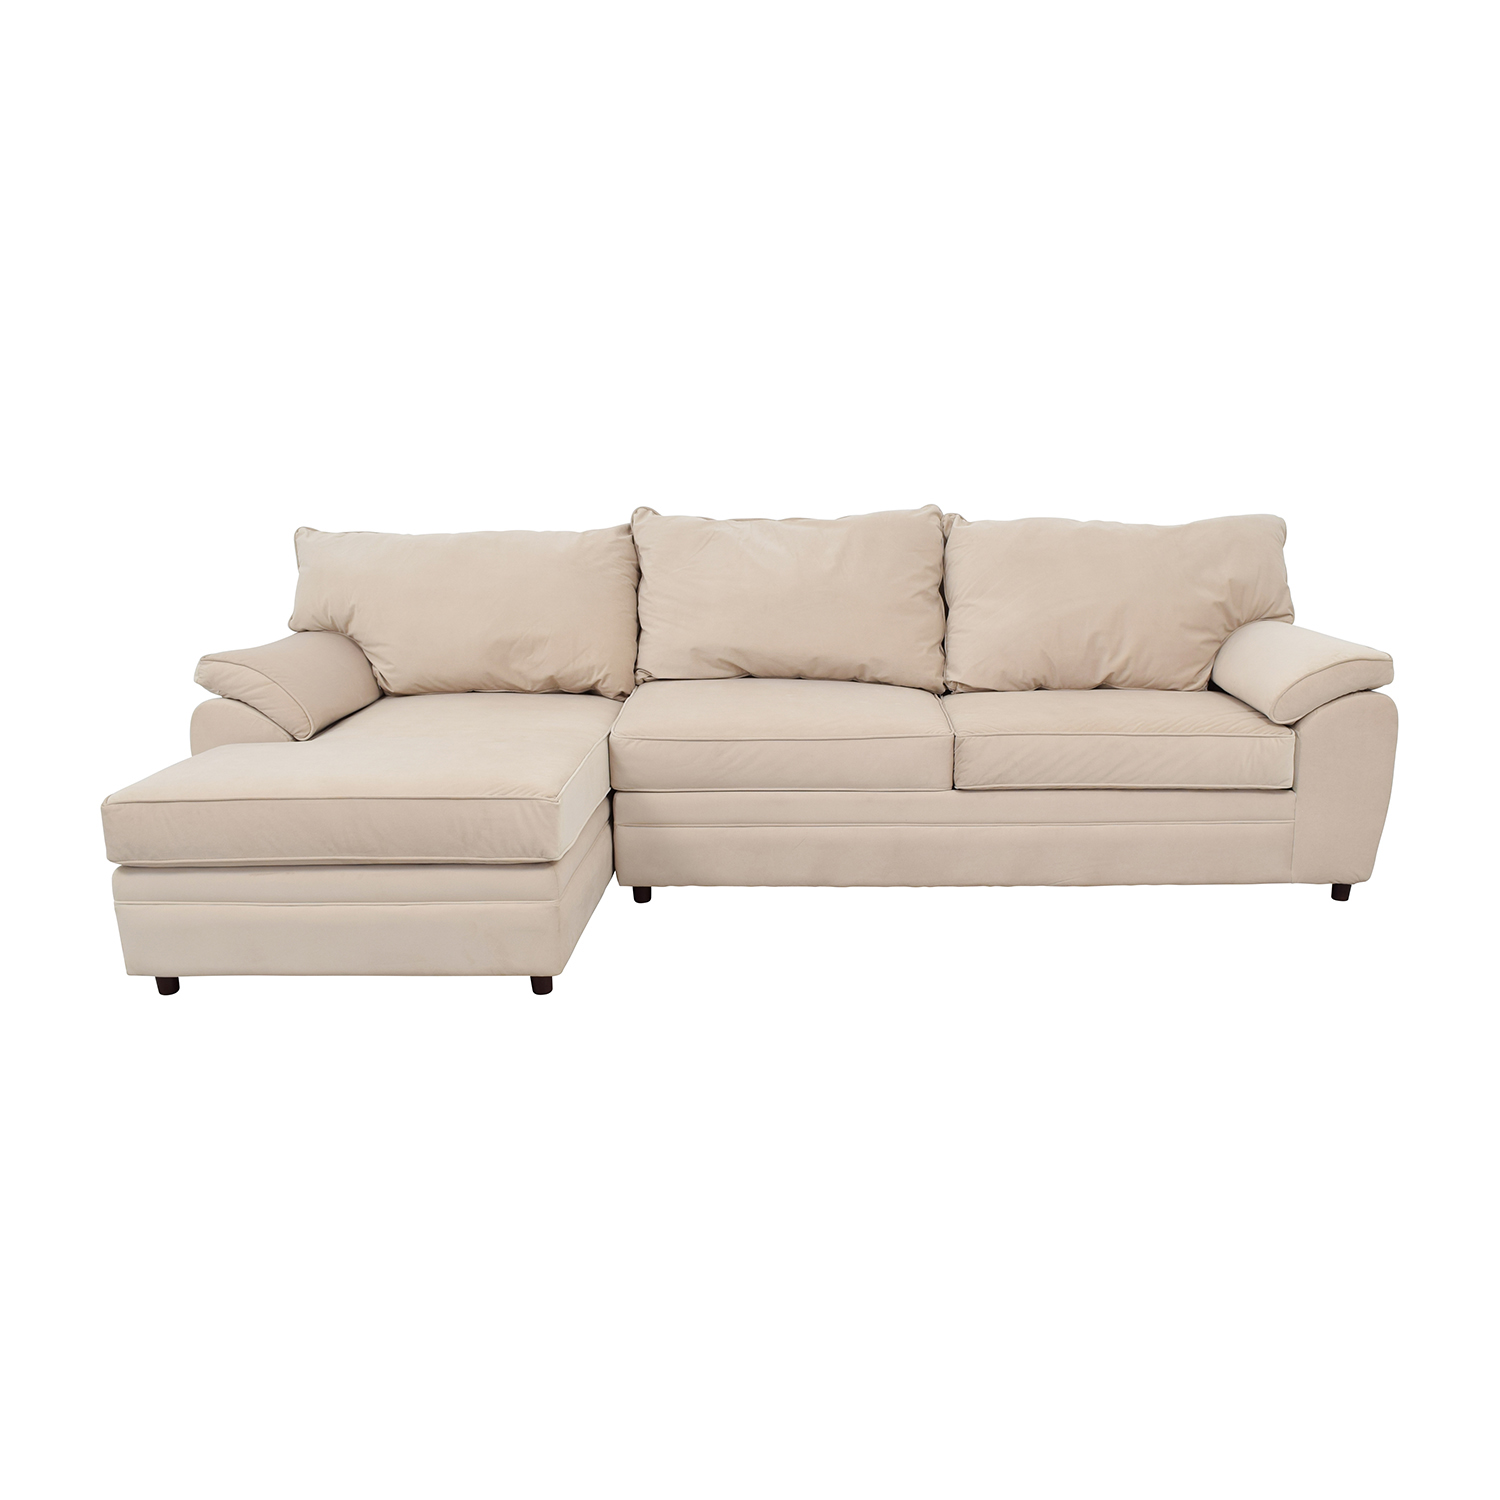 Bobs Furniture Bob Furniture Off-White Right Chaise Sectional